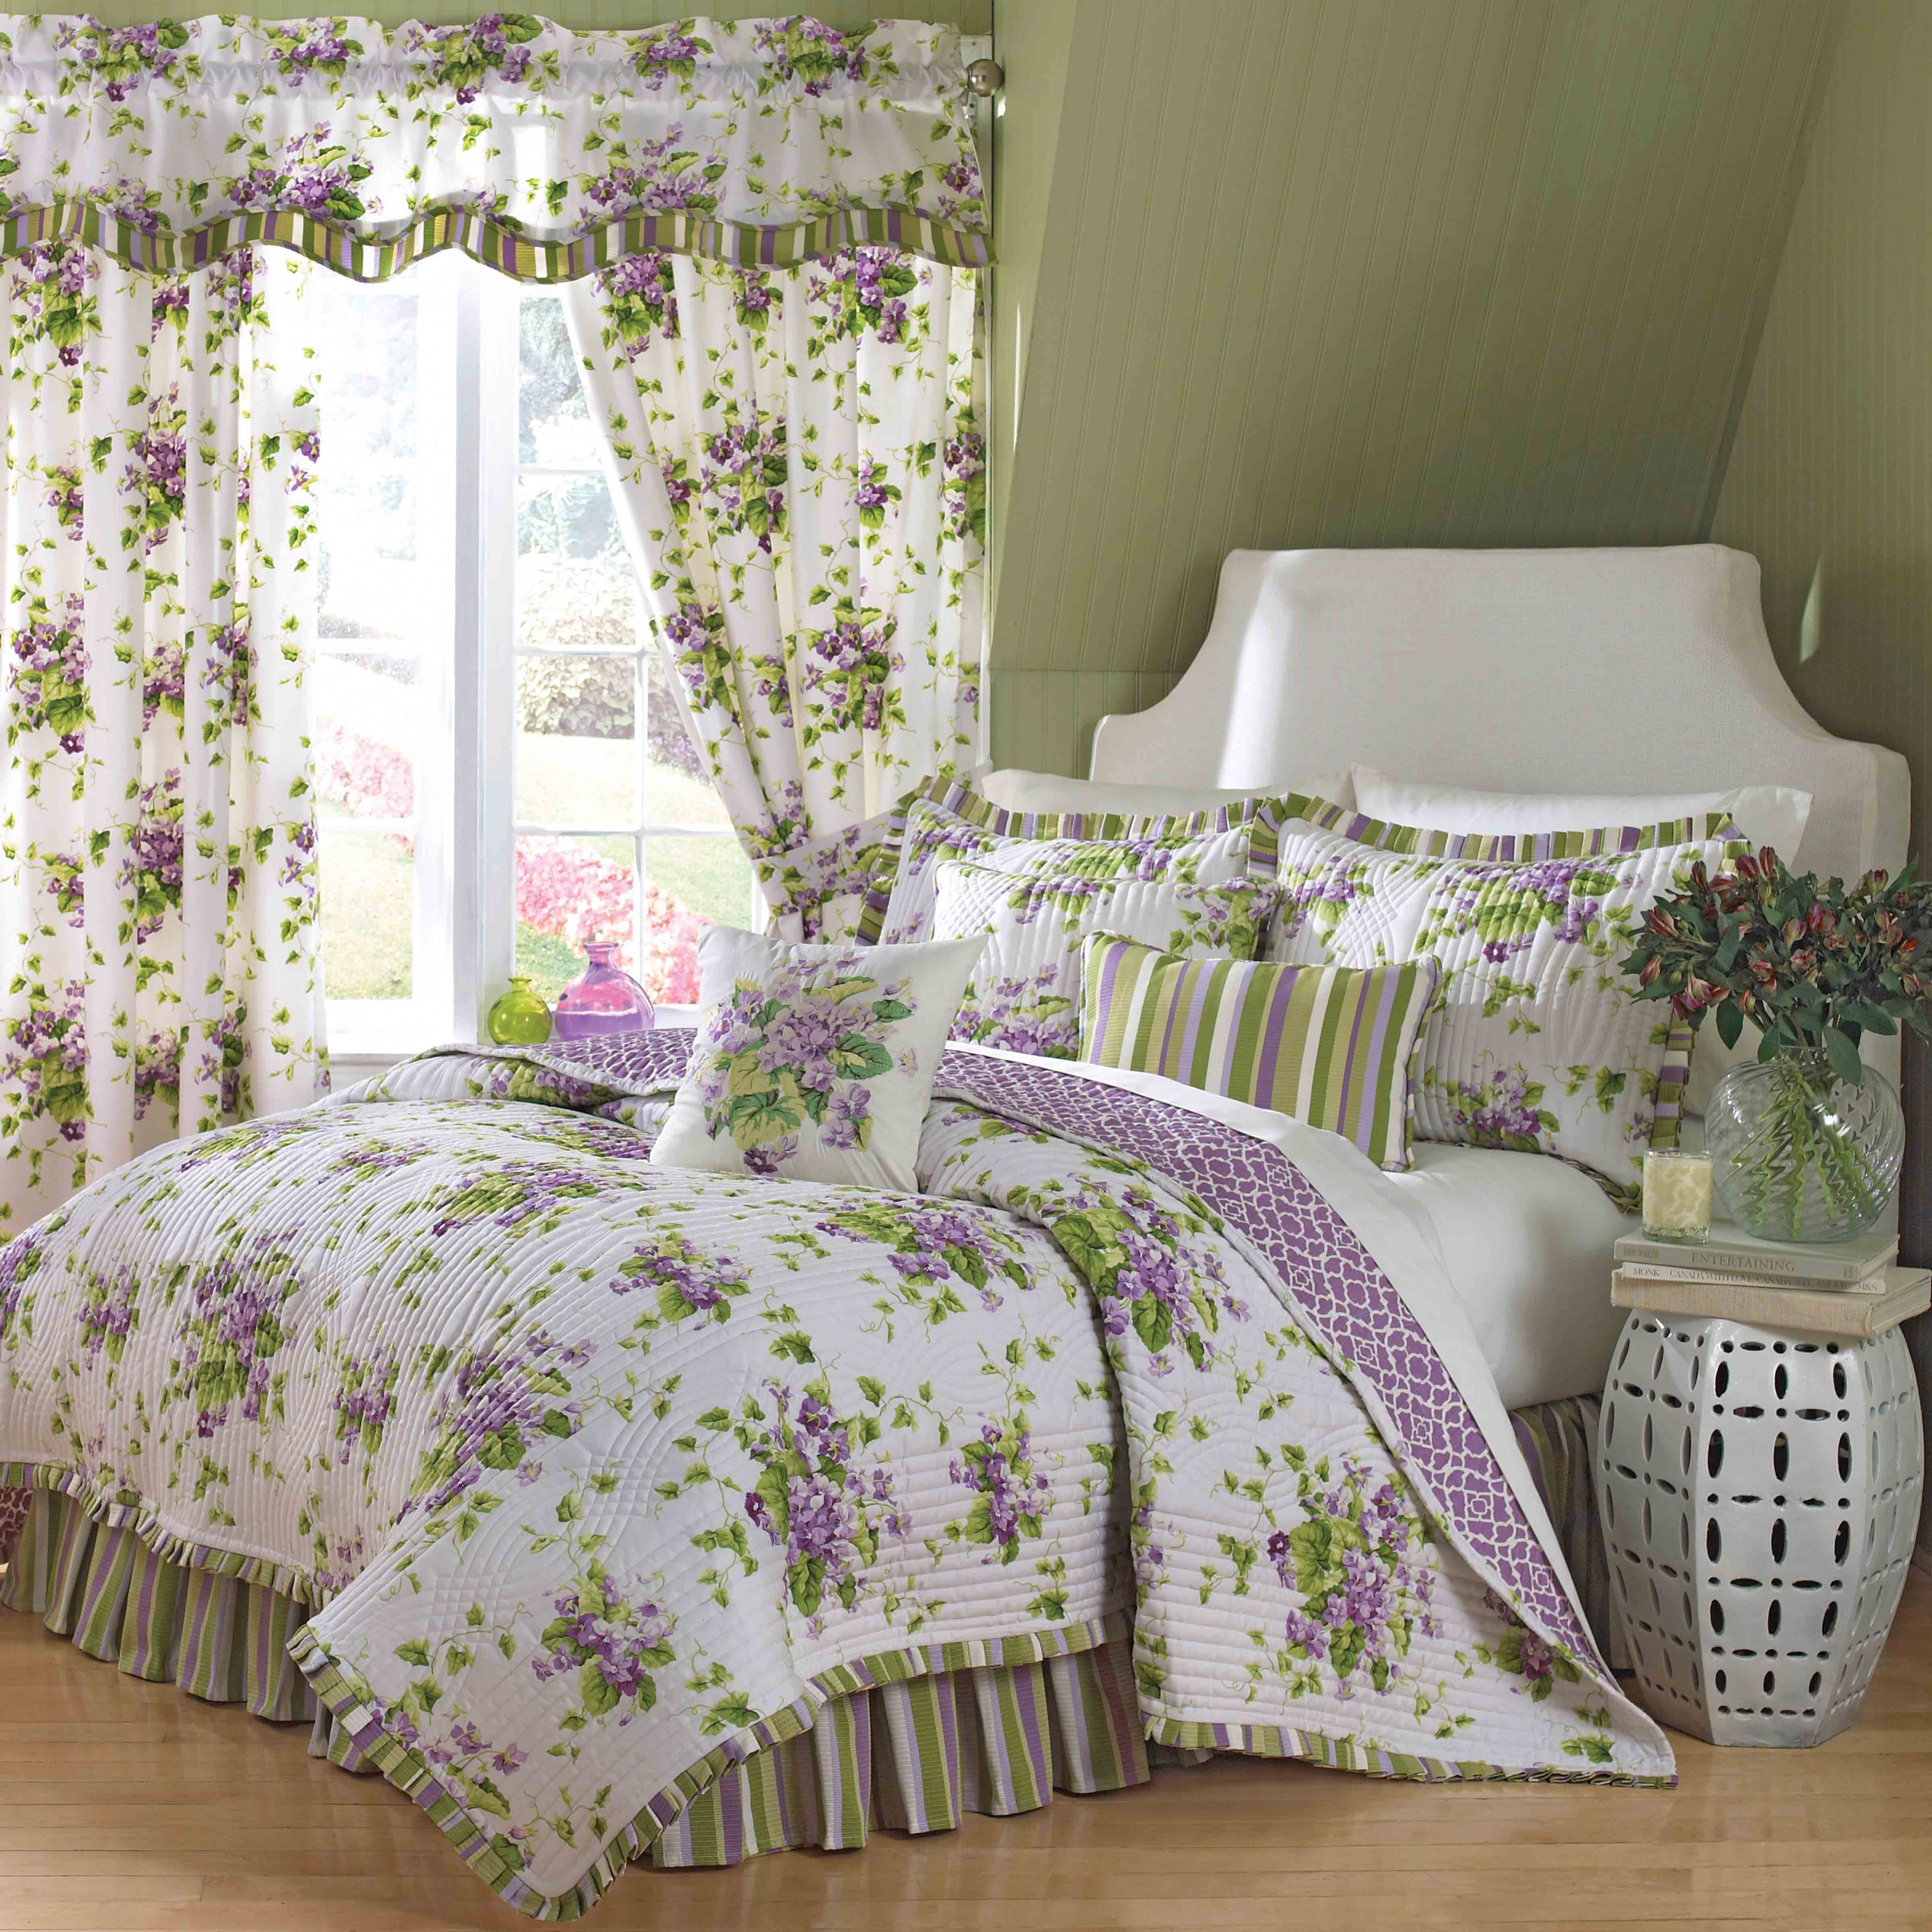 The Home Decorating Company Ellery Homestyles Shares Tips For Creating The Perfect Floral Bedroom